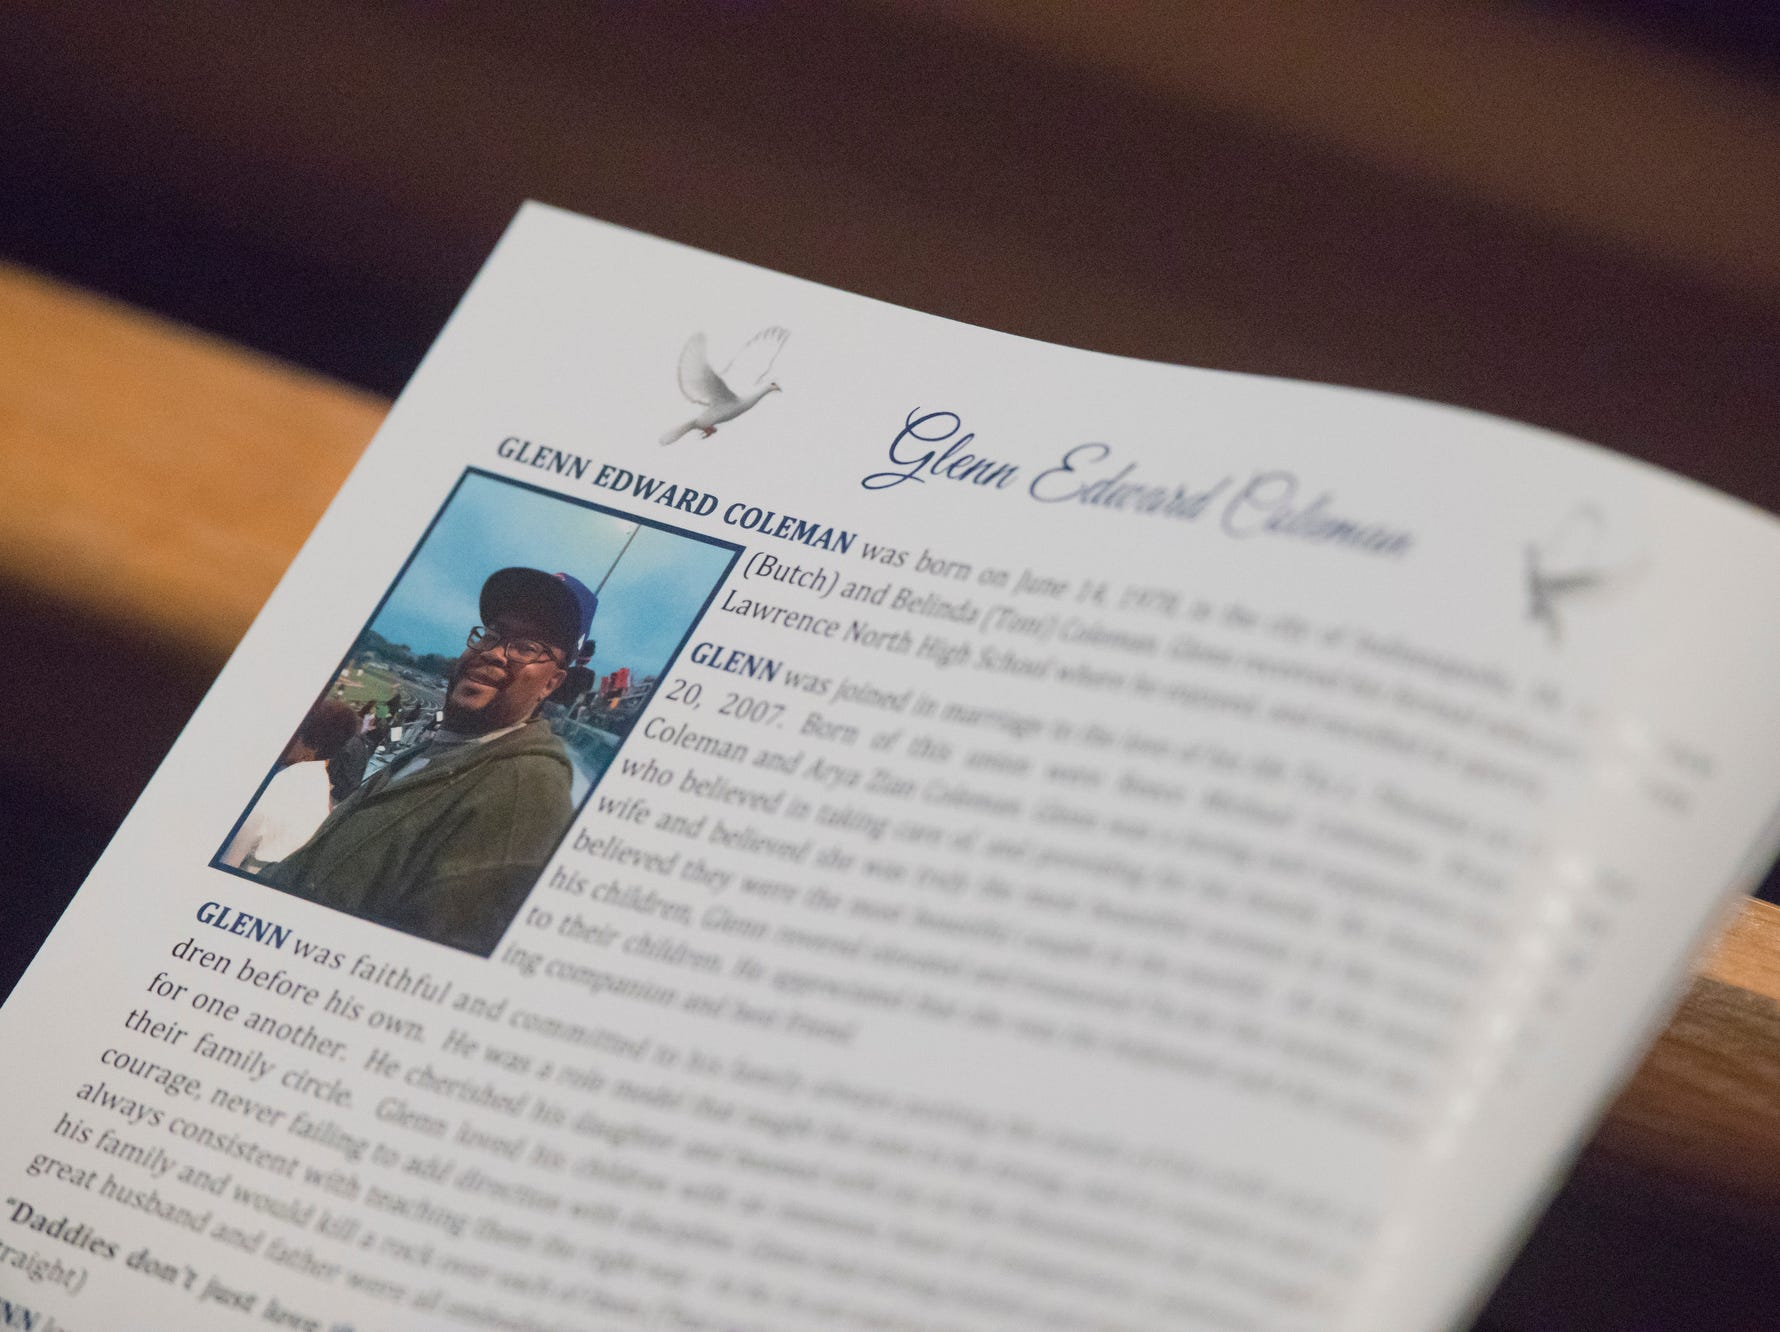 Glenn Edward Coleman's obituary is read during the homegoing service of Glenn Coleman, 40, Reece, 9, Evan, 7, and Arya, 1, at Grace Apostolic Church on Friday, July 27, 2018. Seventeen people were killed in the duck boat accident in Branson, Missouri, nine of them were members of the Coleman family.